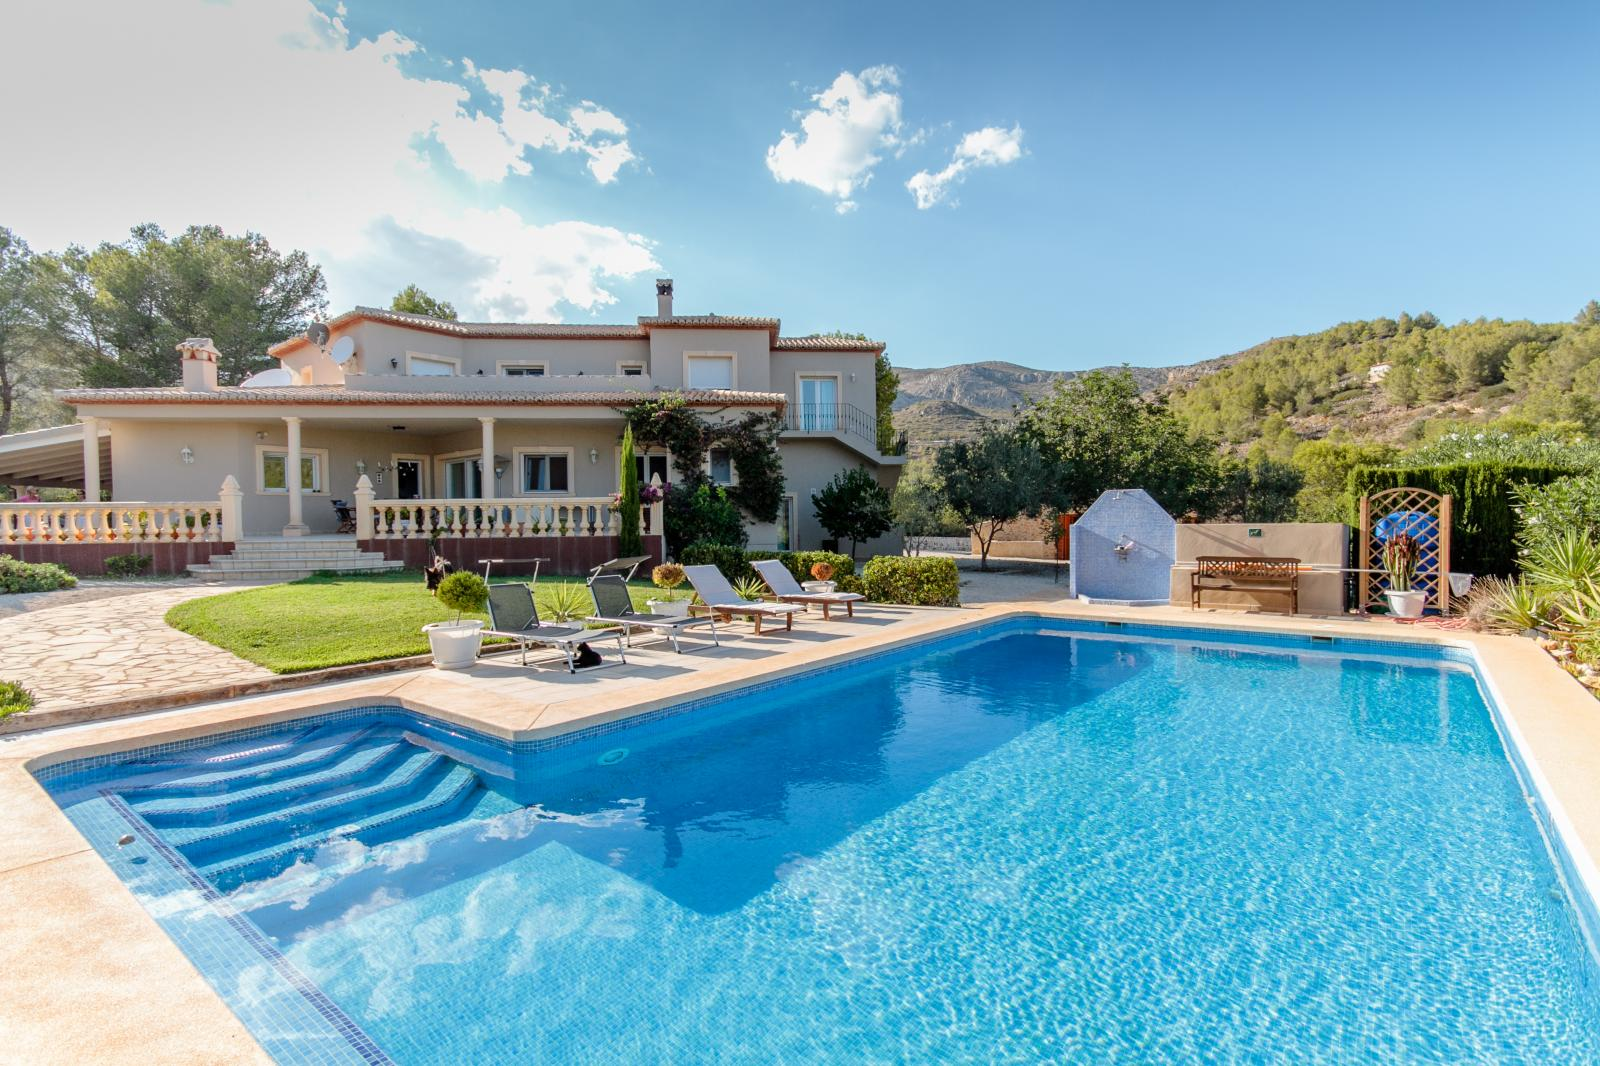 This beautiful luxury villa is situated in the middle of unspoiled countryside and has fa, Spain